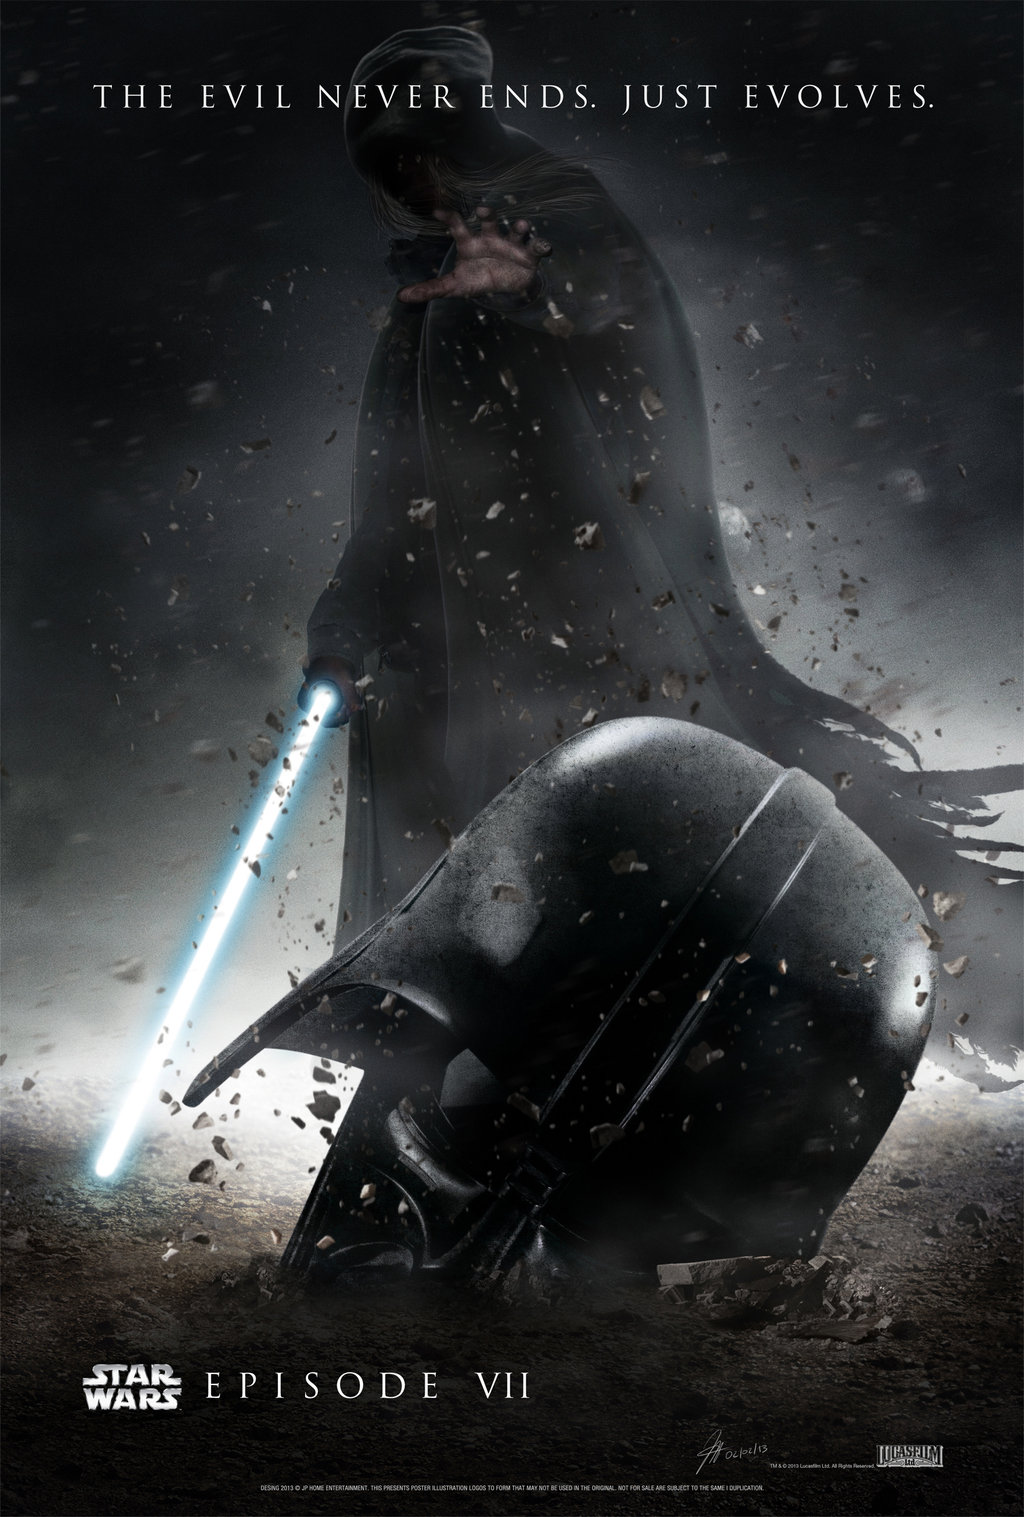 STAR WARS - Episode VII  / Poster Provisional by jphomeentertainment